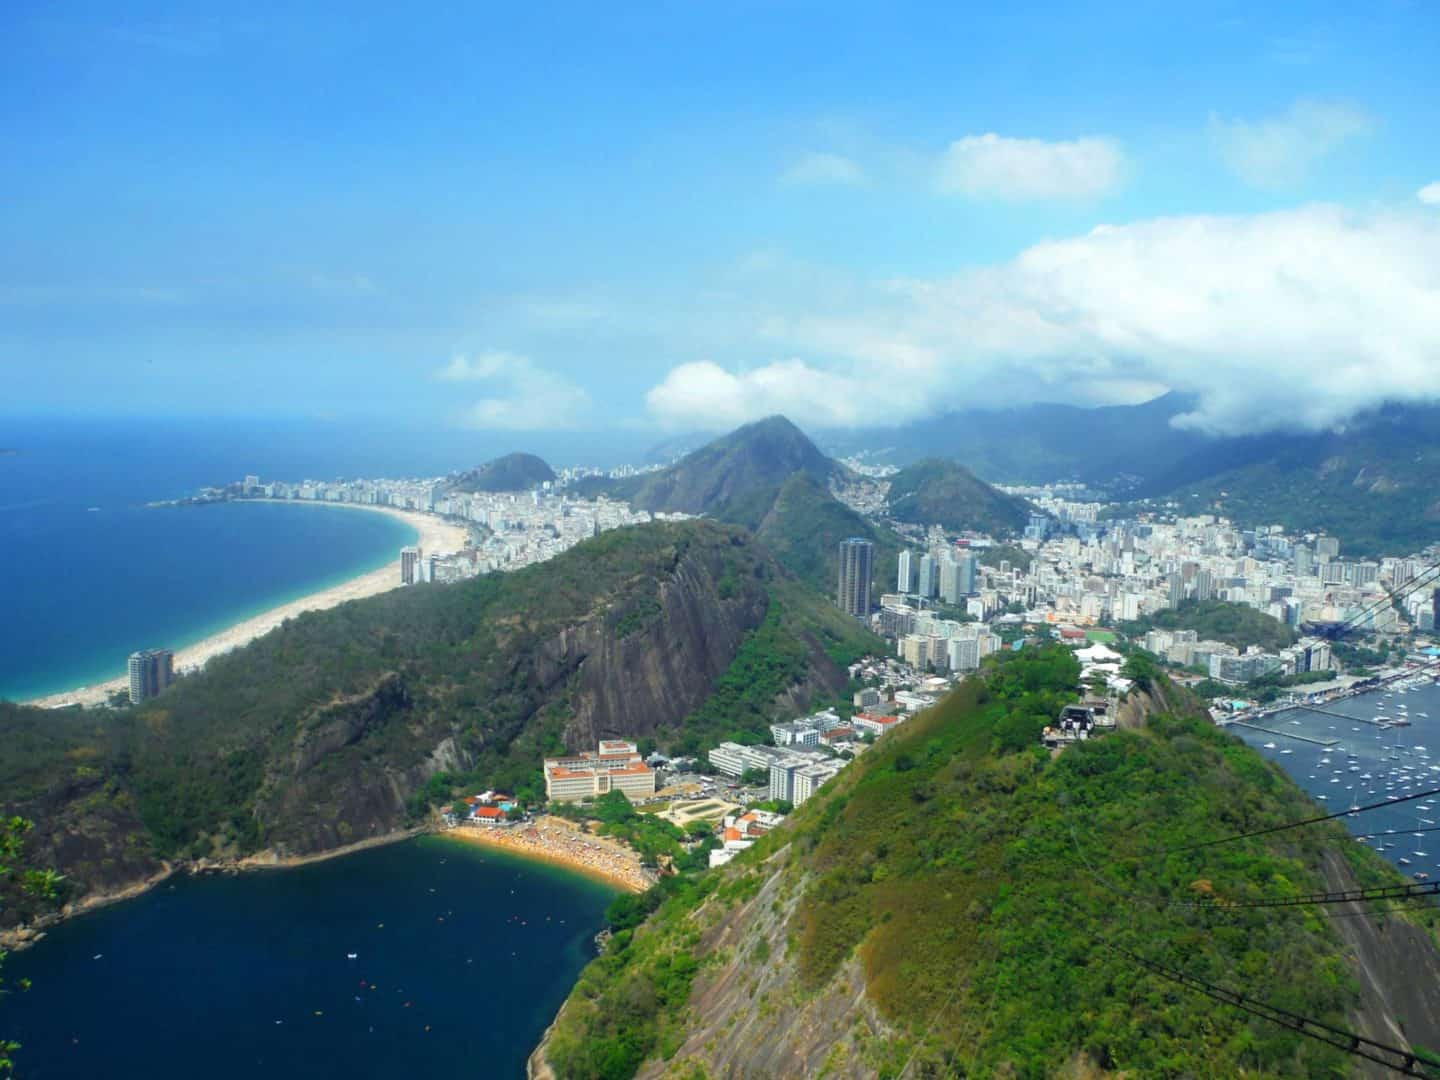 south america must visit places Rio- Bay of Rio